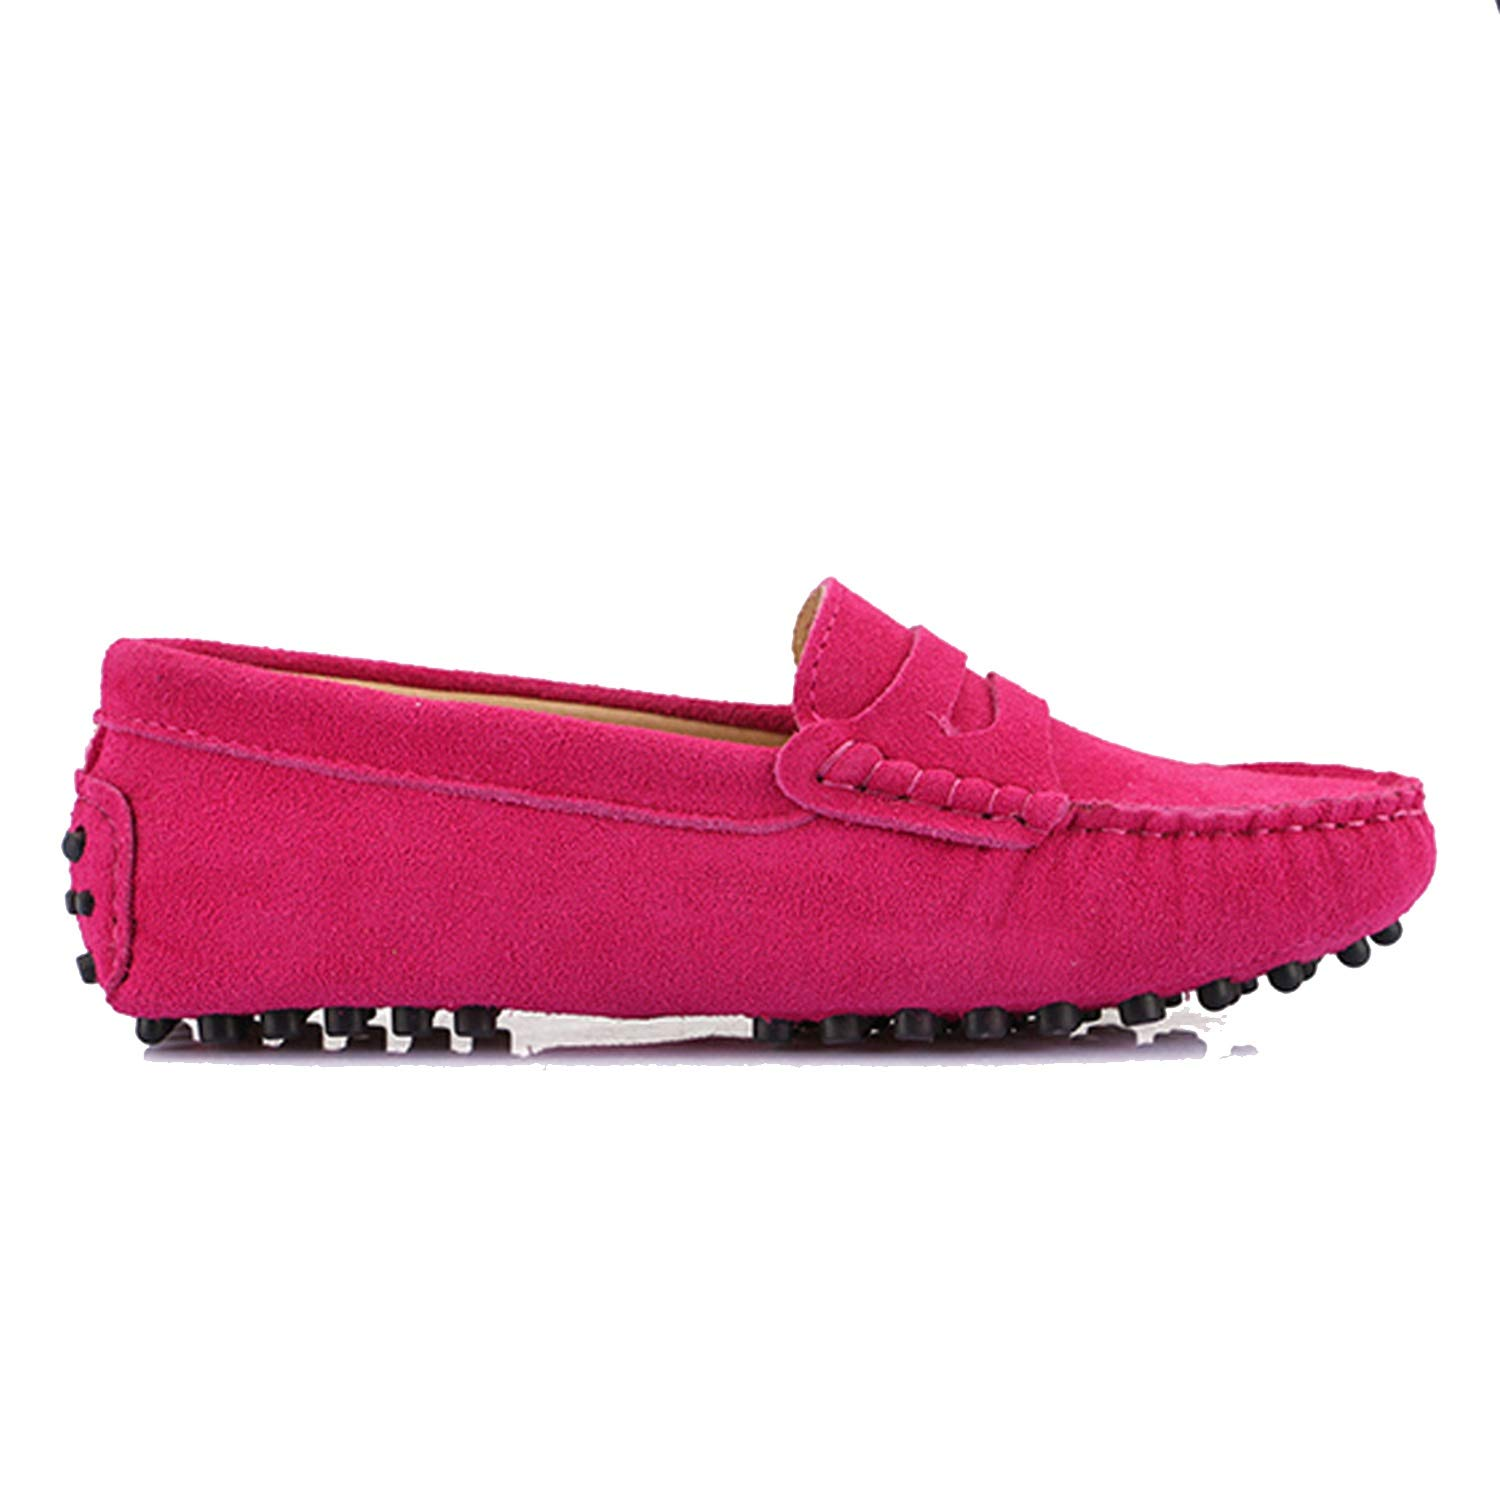 Peach Pink as pic Women's Woman shoes Flats Casual Loafers Soft Slip On Moccasins Lady Driving shoes